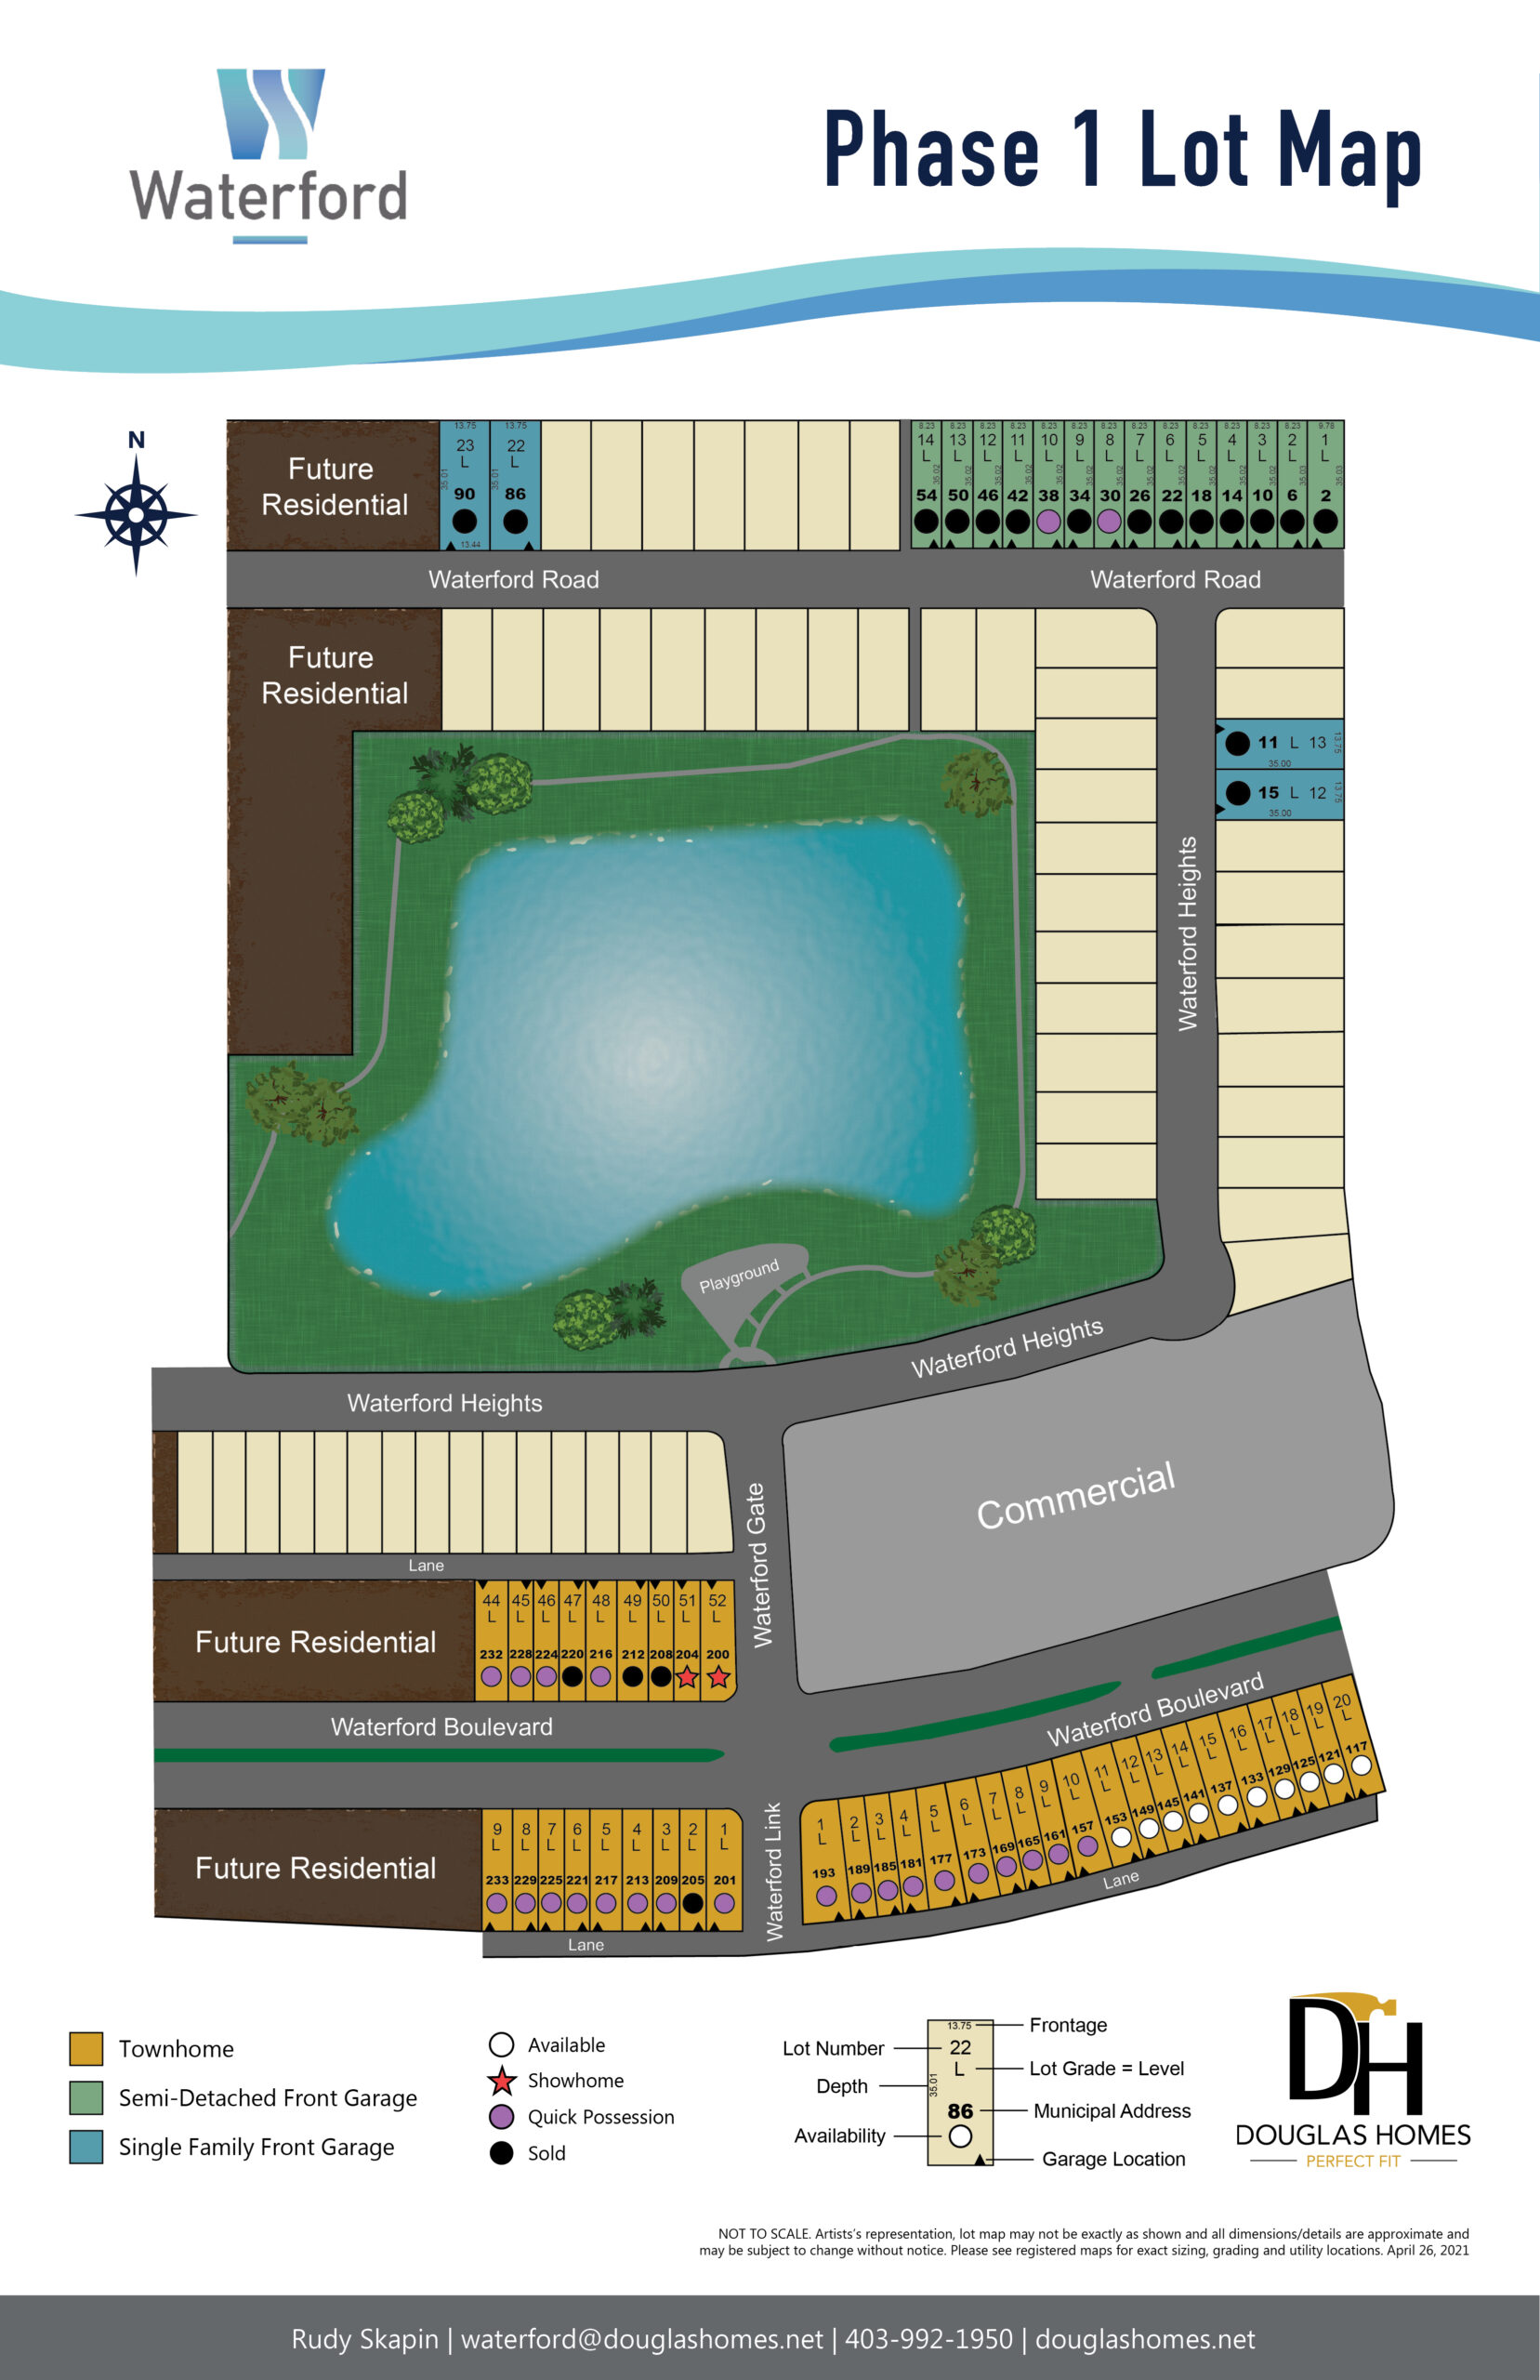 Waterford Lot Map